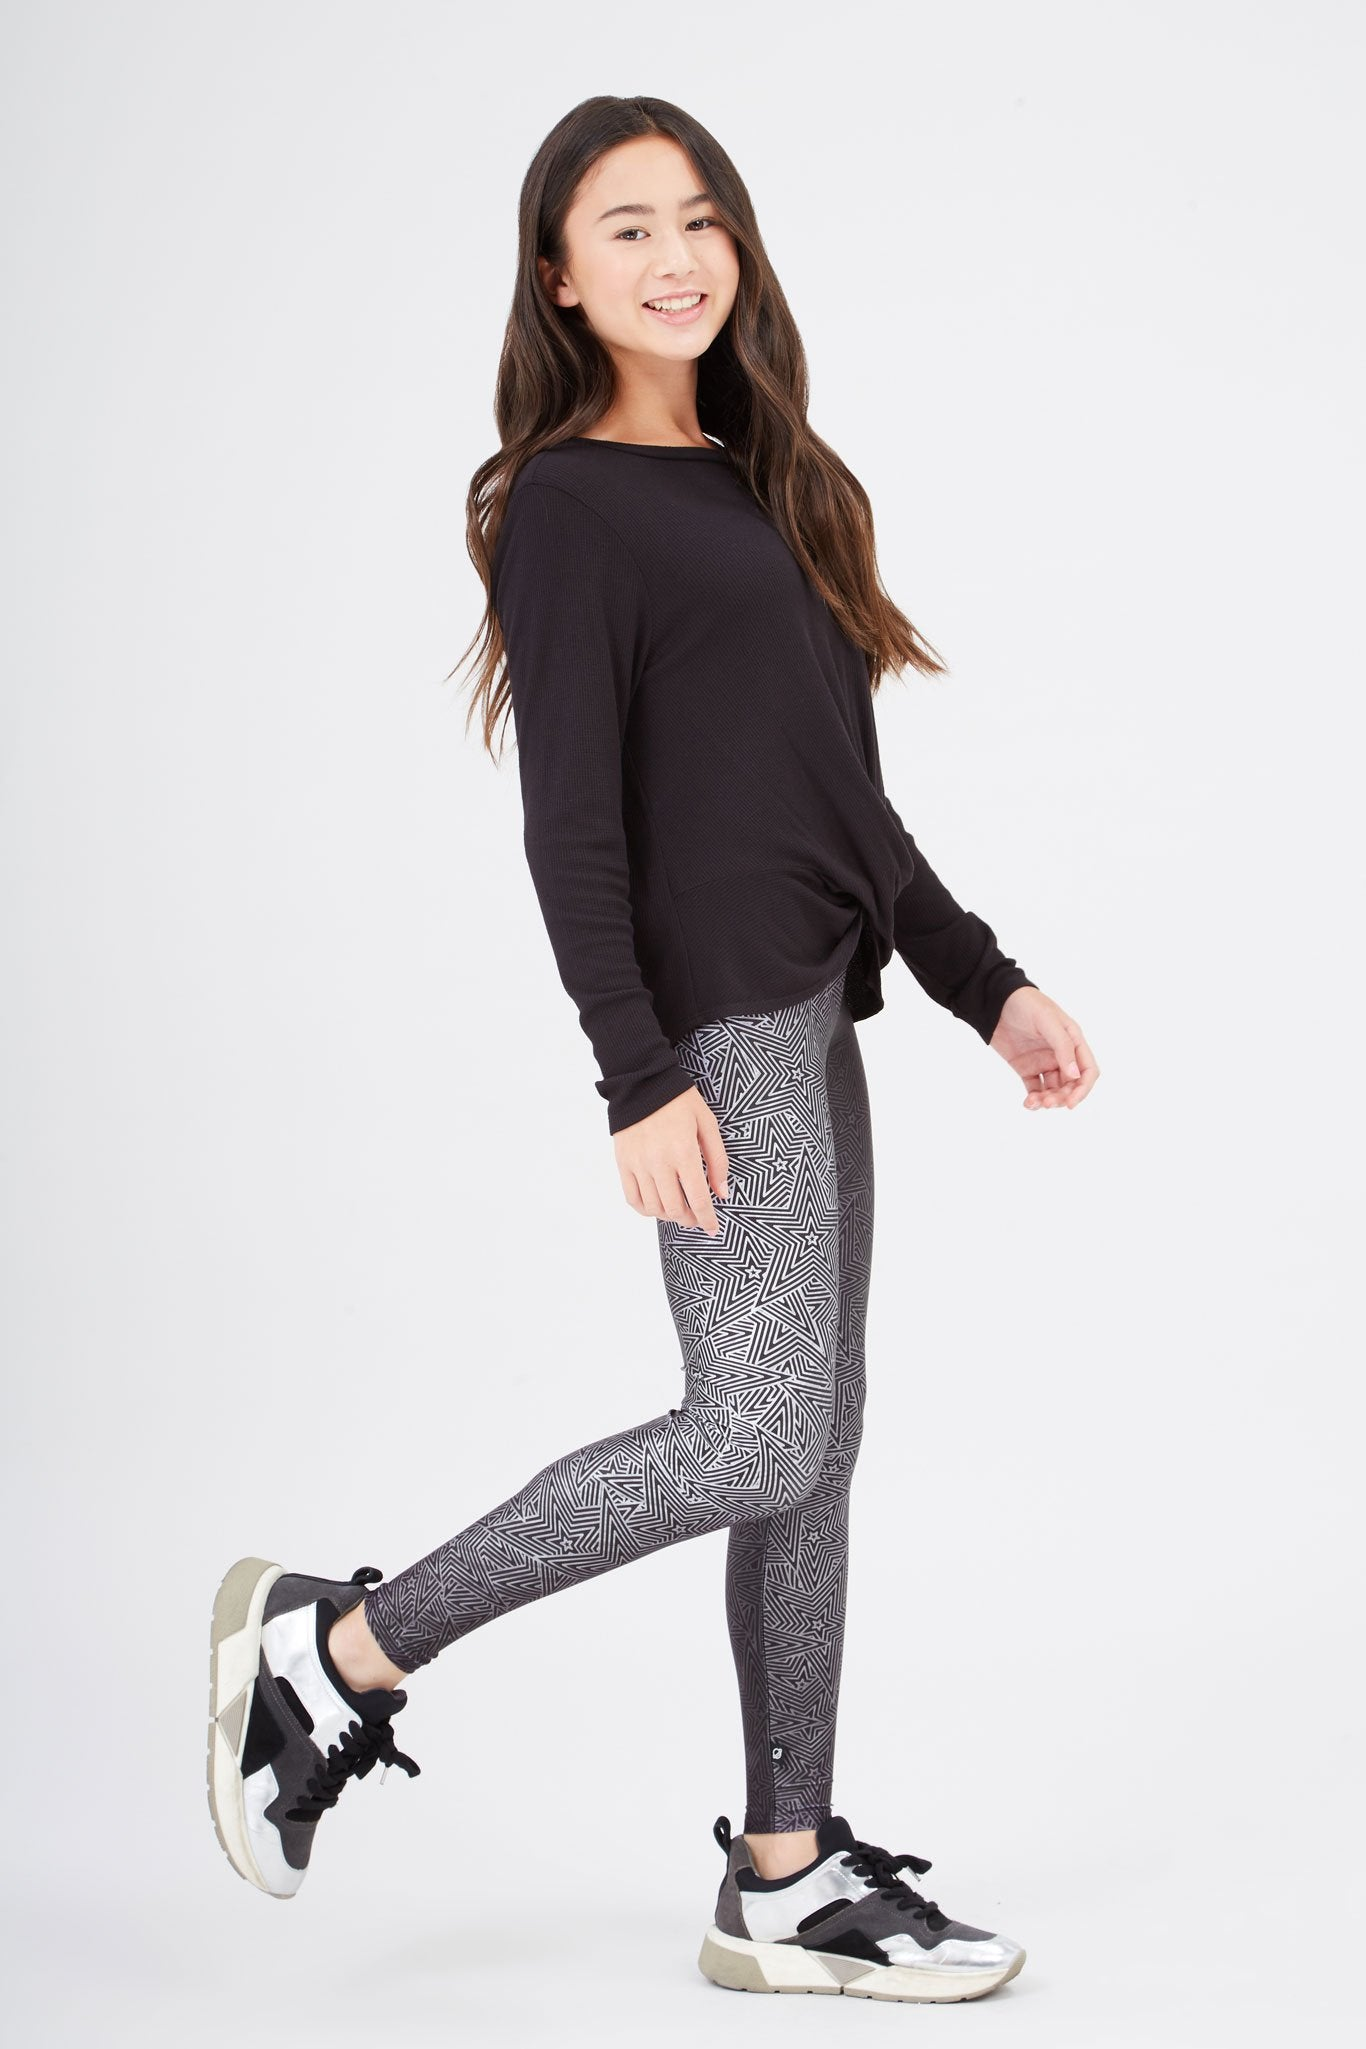 Girls Superstar Moves Leggings